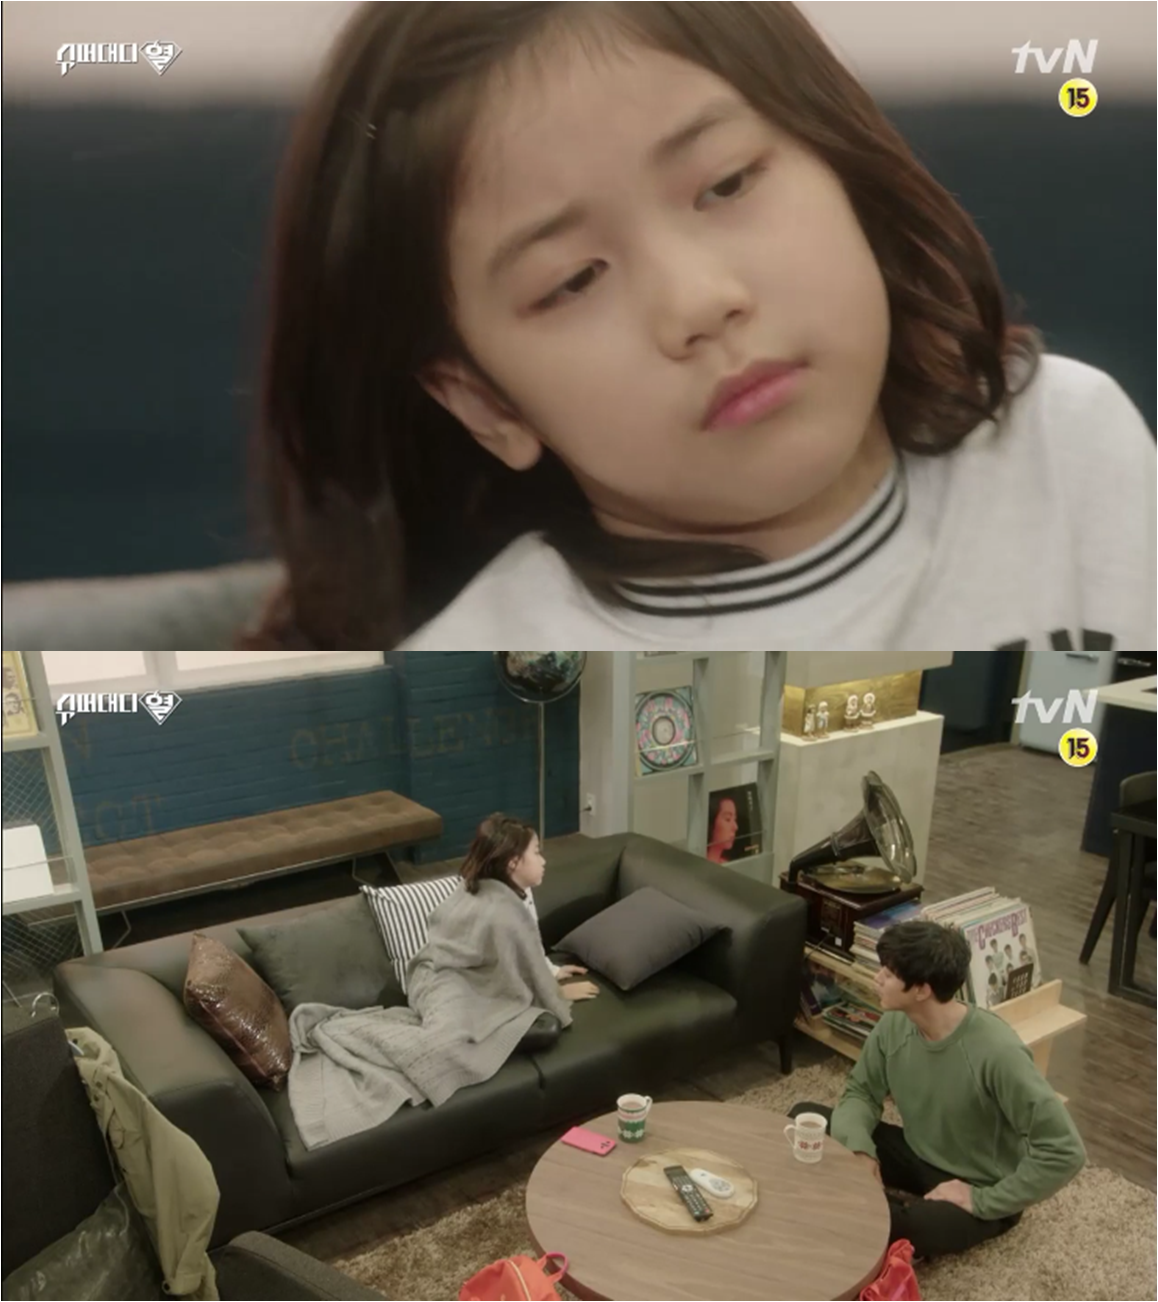 Super Daddy Yeol Episode 1 Review Super Daddy Yeol 1 lee dong gun Super Daddy Yeol lee yoo ri Super Daddy Yeol lee re Super Daddy Yeol Korean Dramas enjoykorea hui Super Daddy Yul episode 1 Super Daddy Yul ep 1 recap